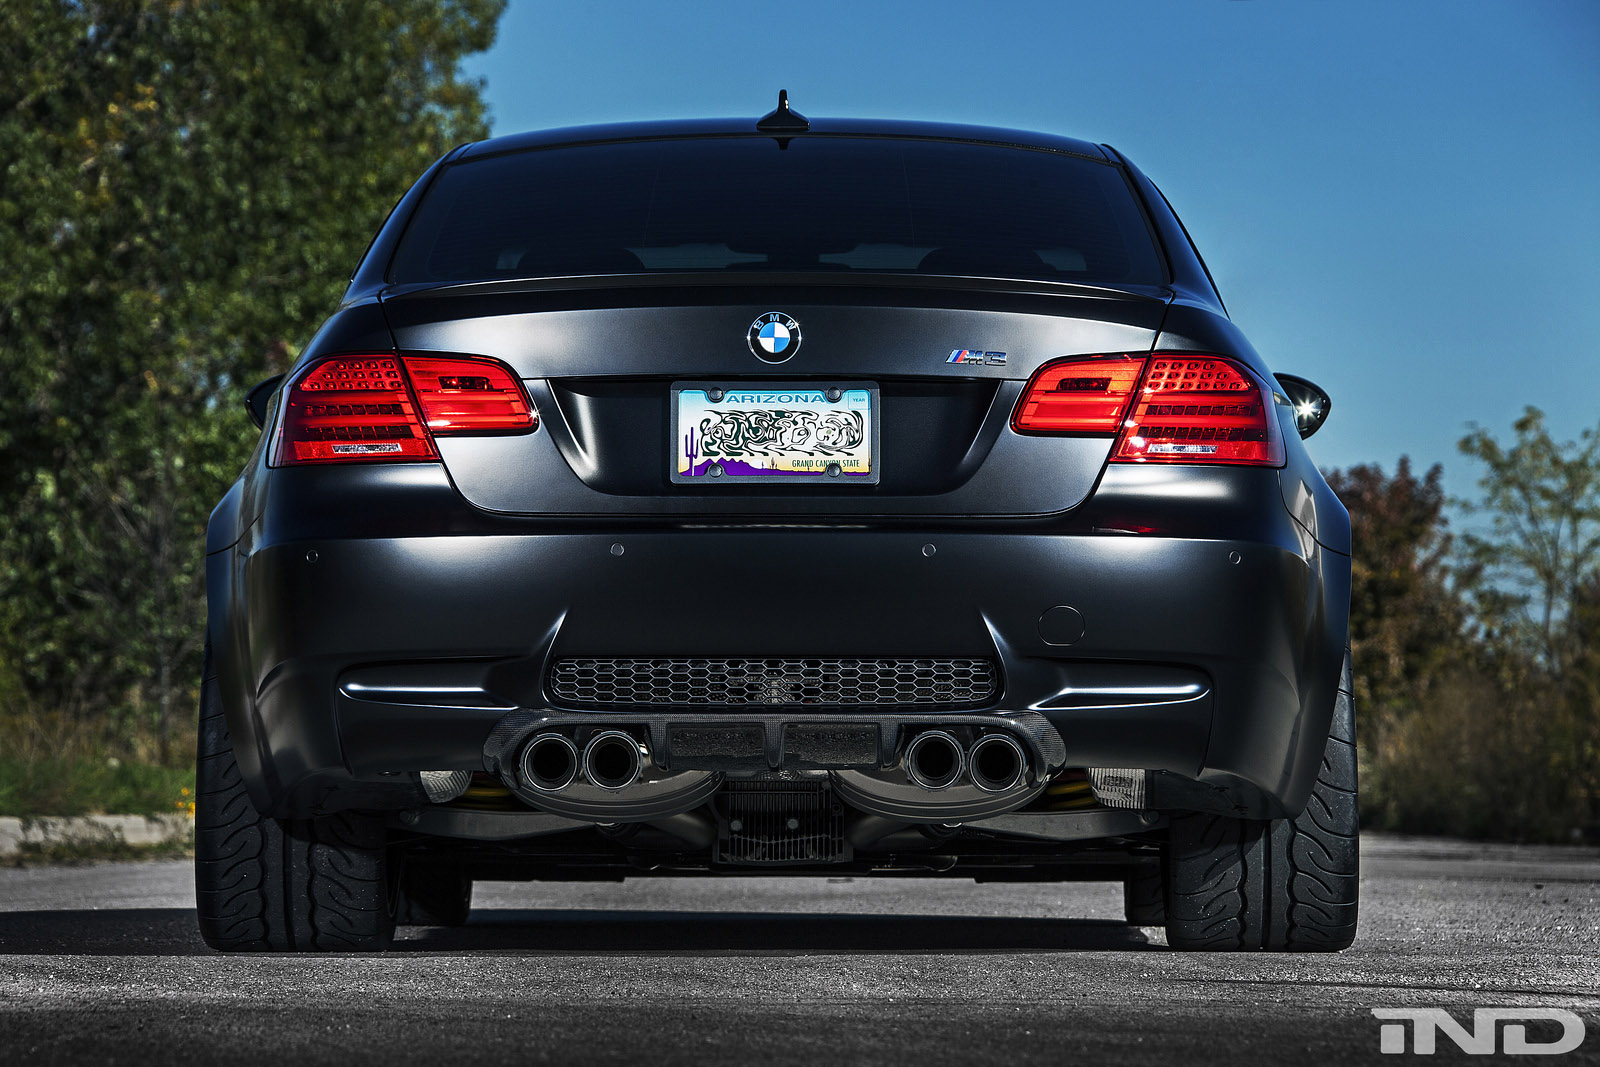 Bmw M3 Convertible >> Frozen Black Edition BMW E92 M3 by iND